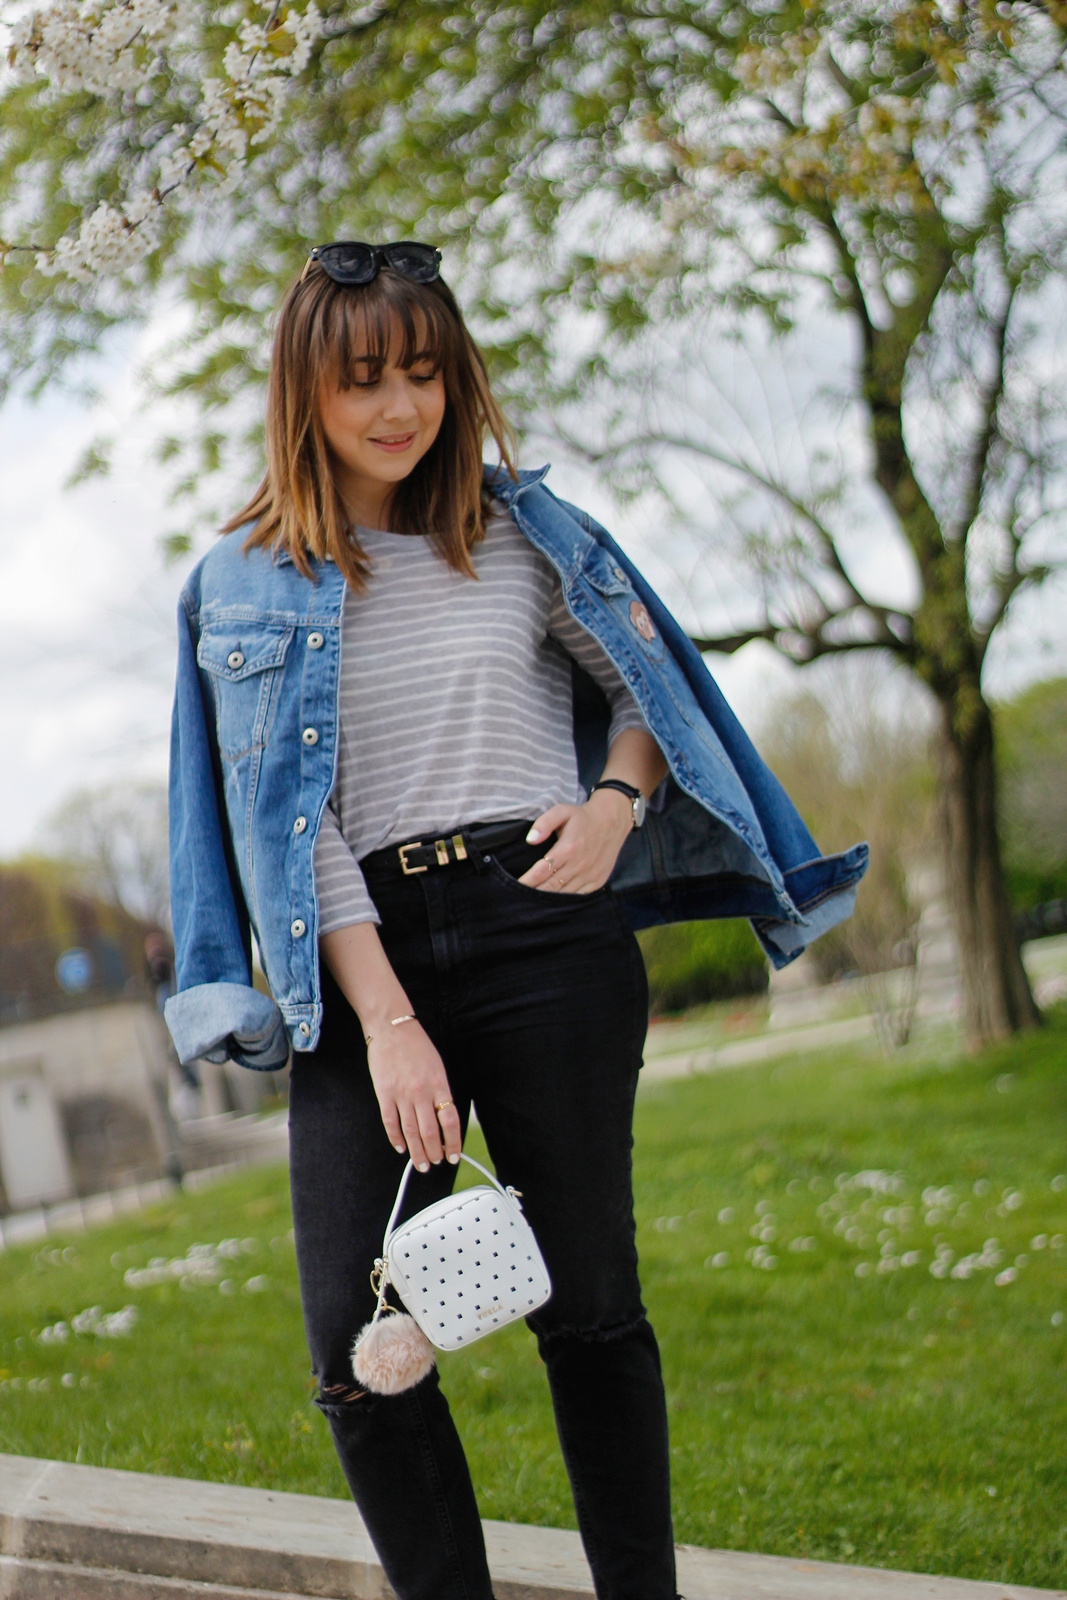 Blog mode femme Paris - Du style, Madame